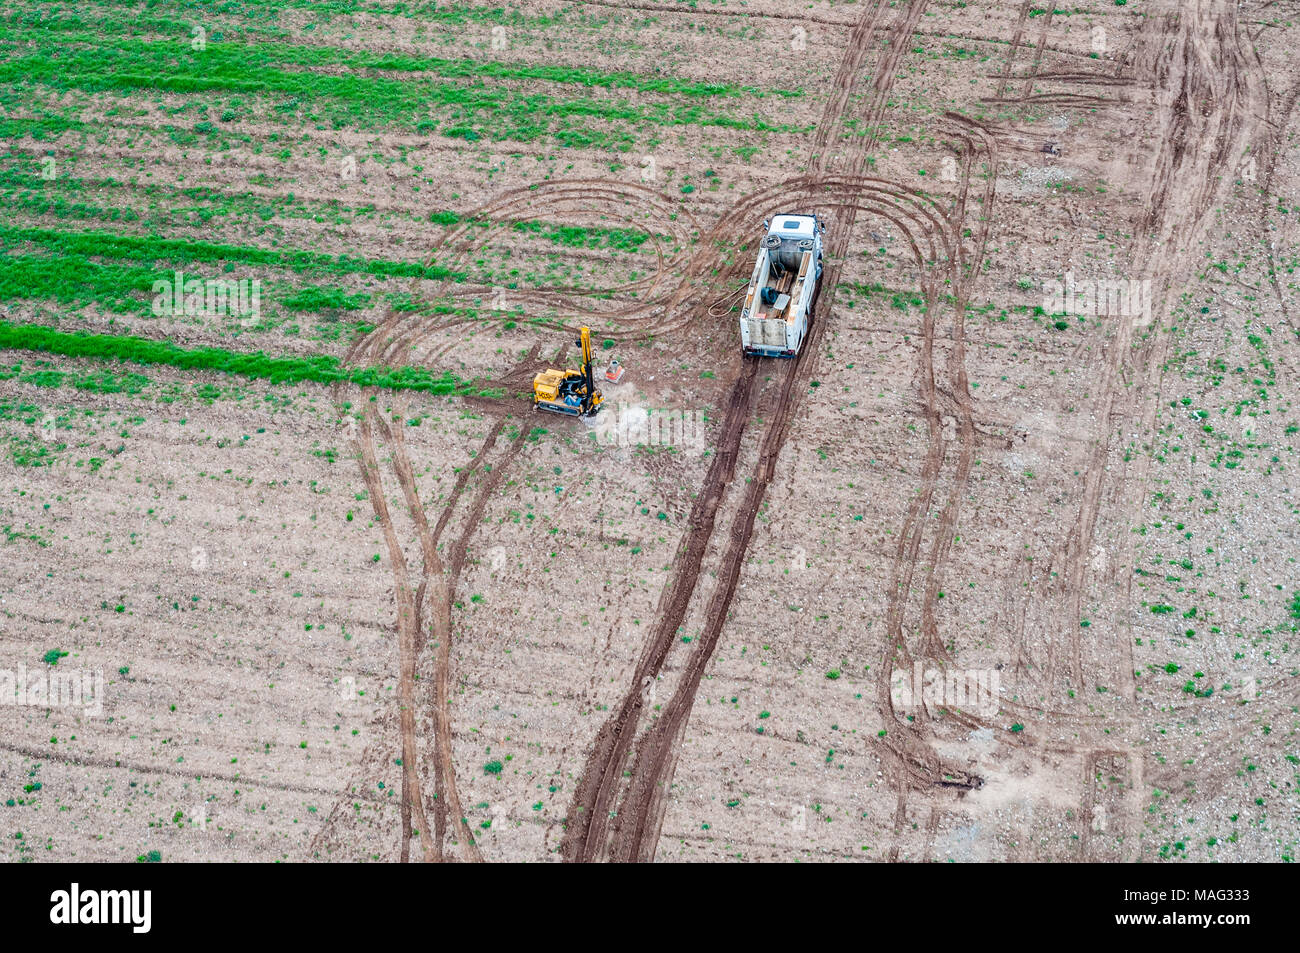 aerial view, survey work for geotechnical study, field, soil core, soil report - Stock Image